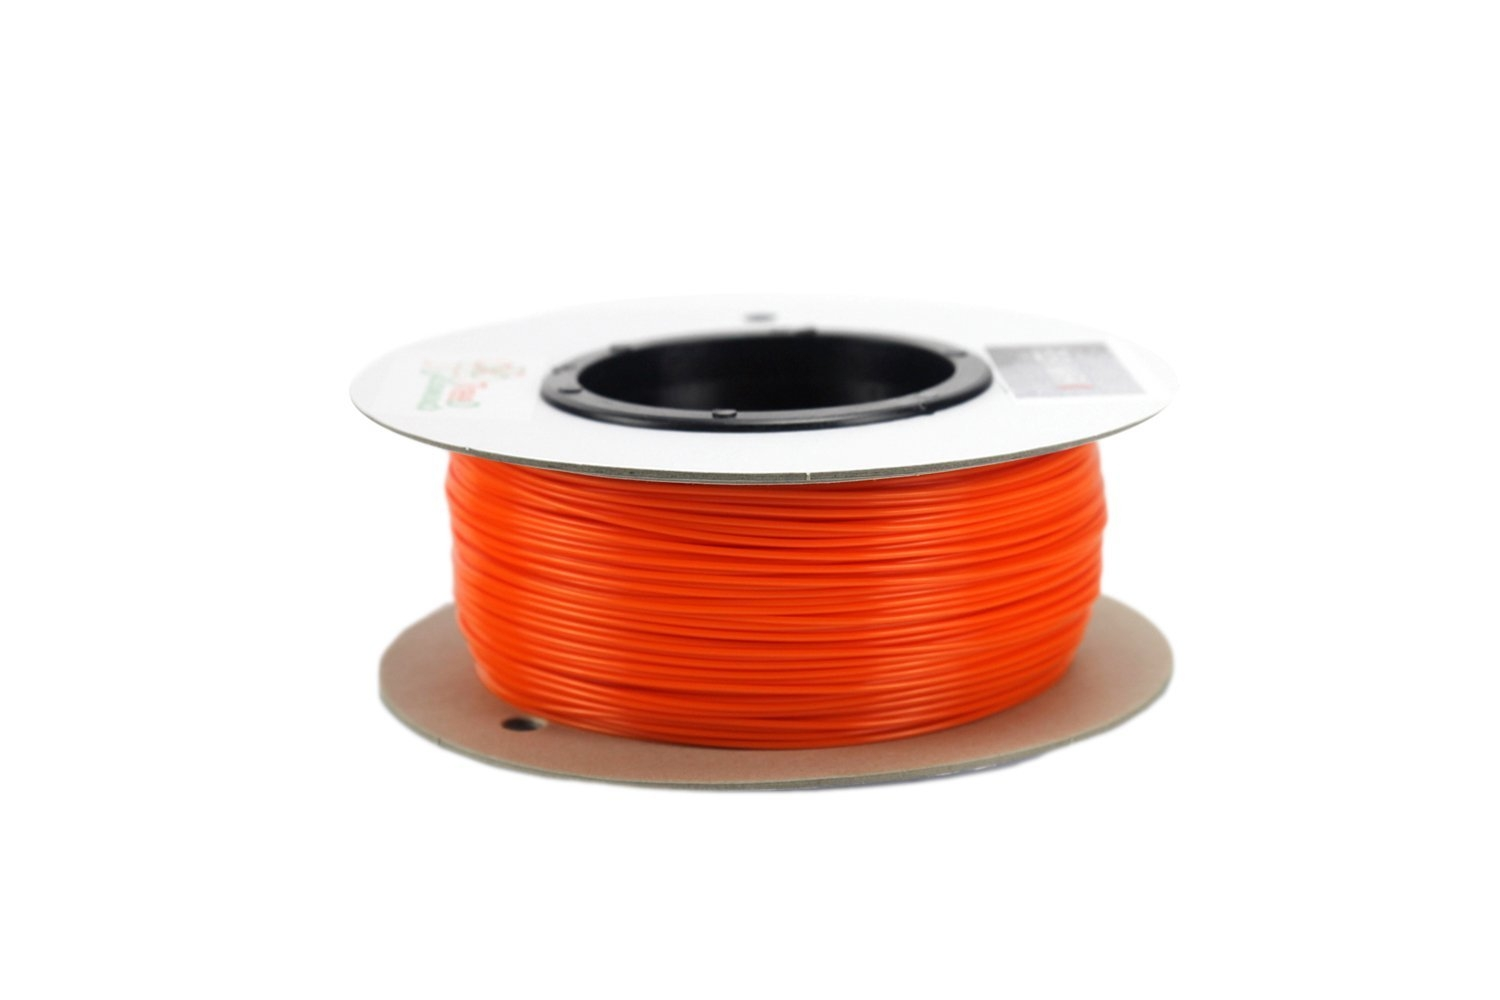 TreeD Ultraflexx tpe Ultraflexx Orange TPE 1.75 mm